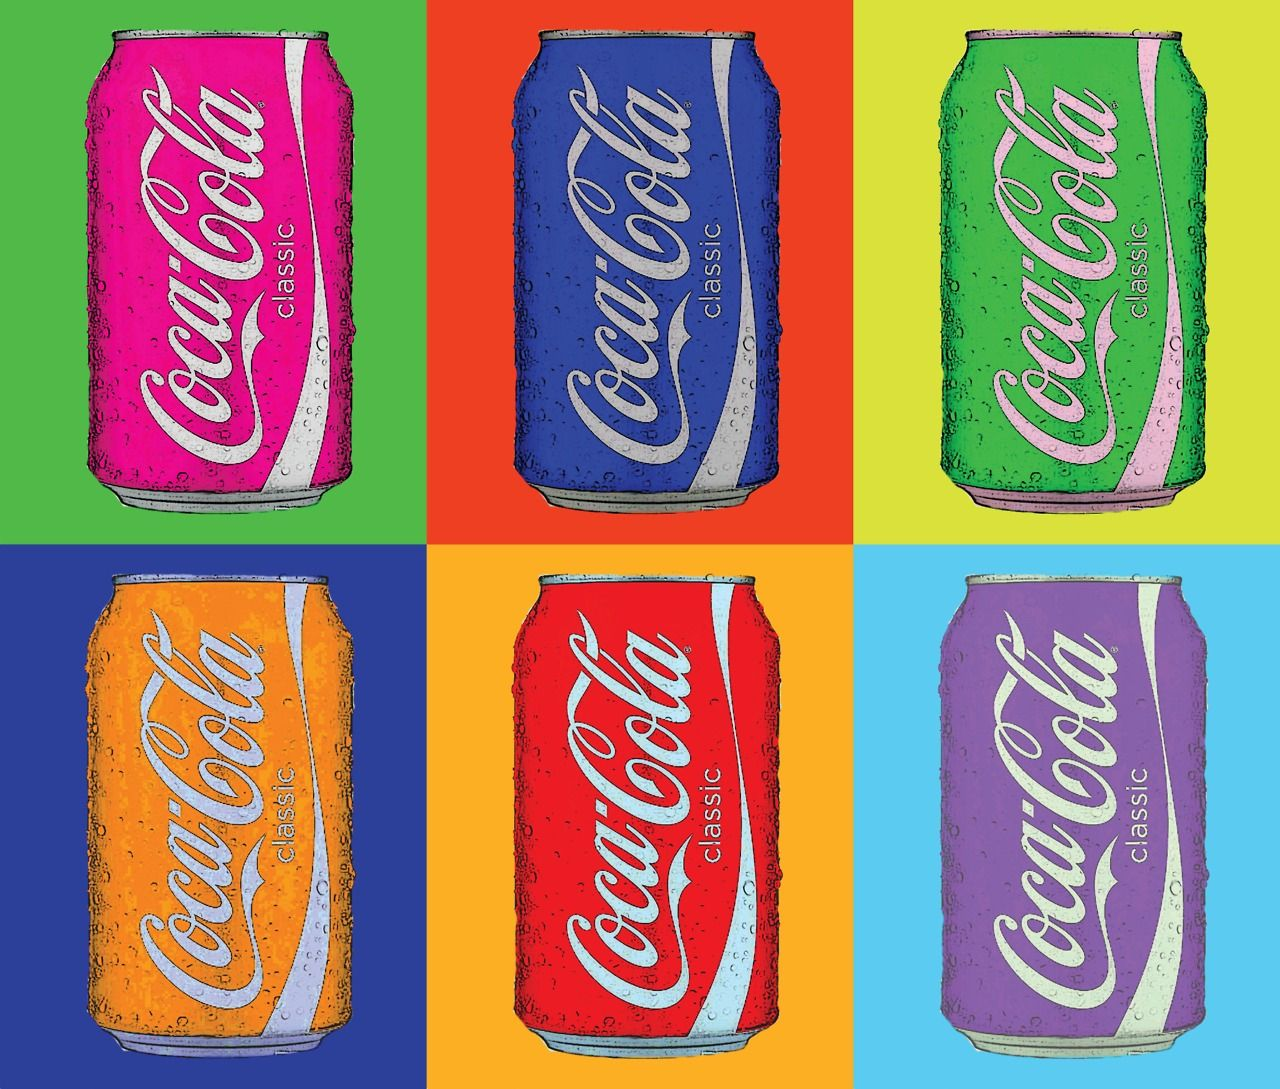 Bien-aimé cocacola | Tumblr | open happiness | Pinterest | Warhol, Art  TA62